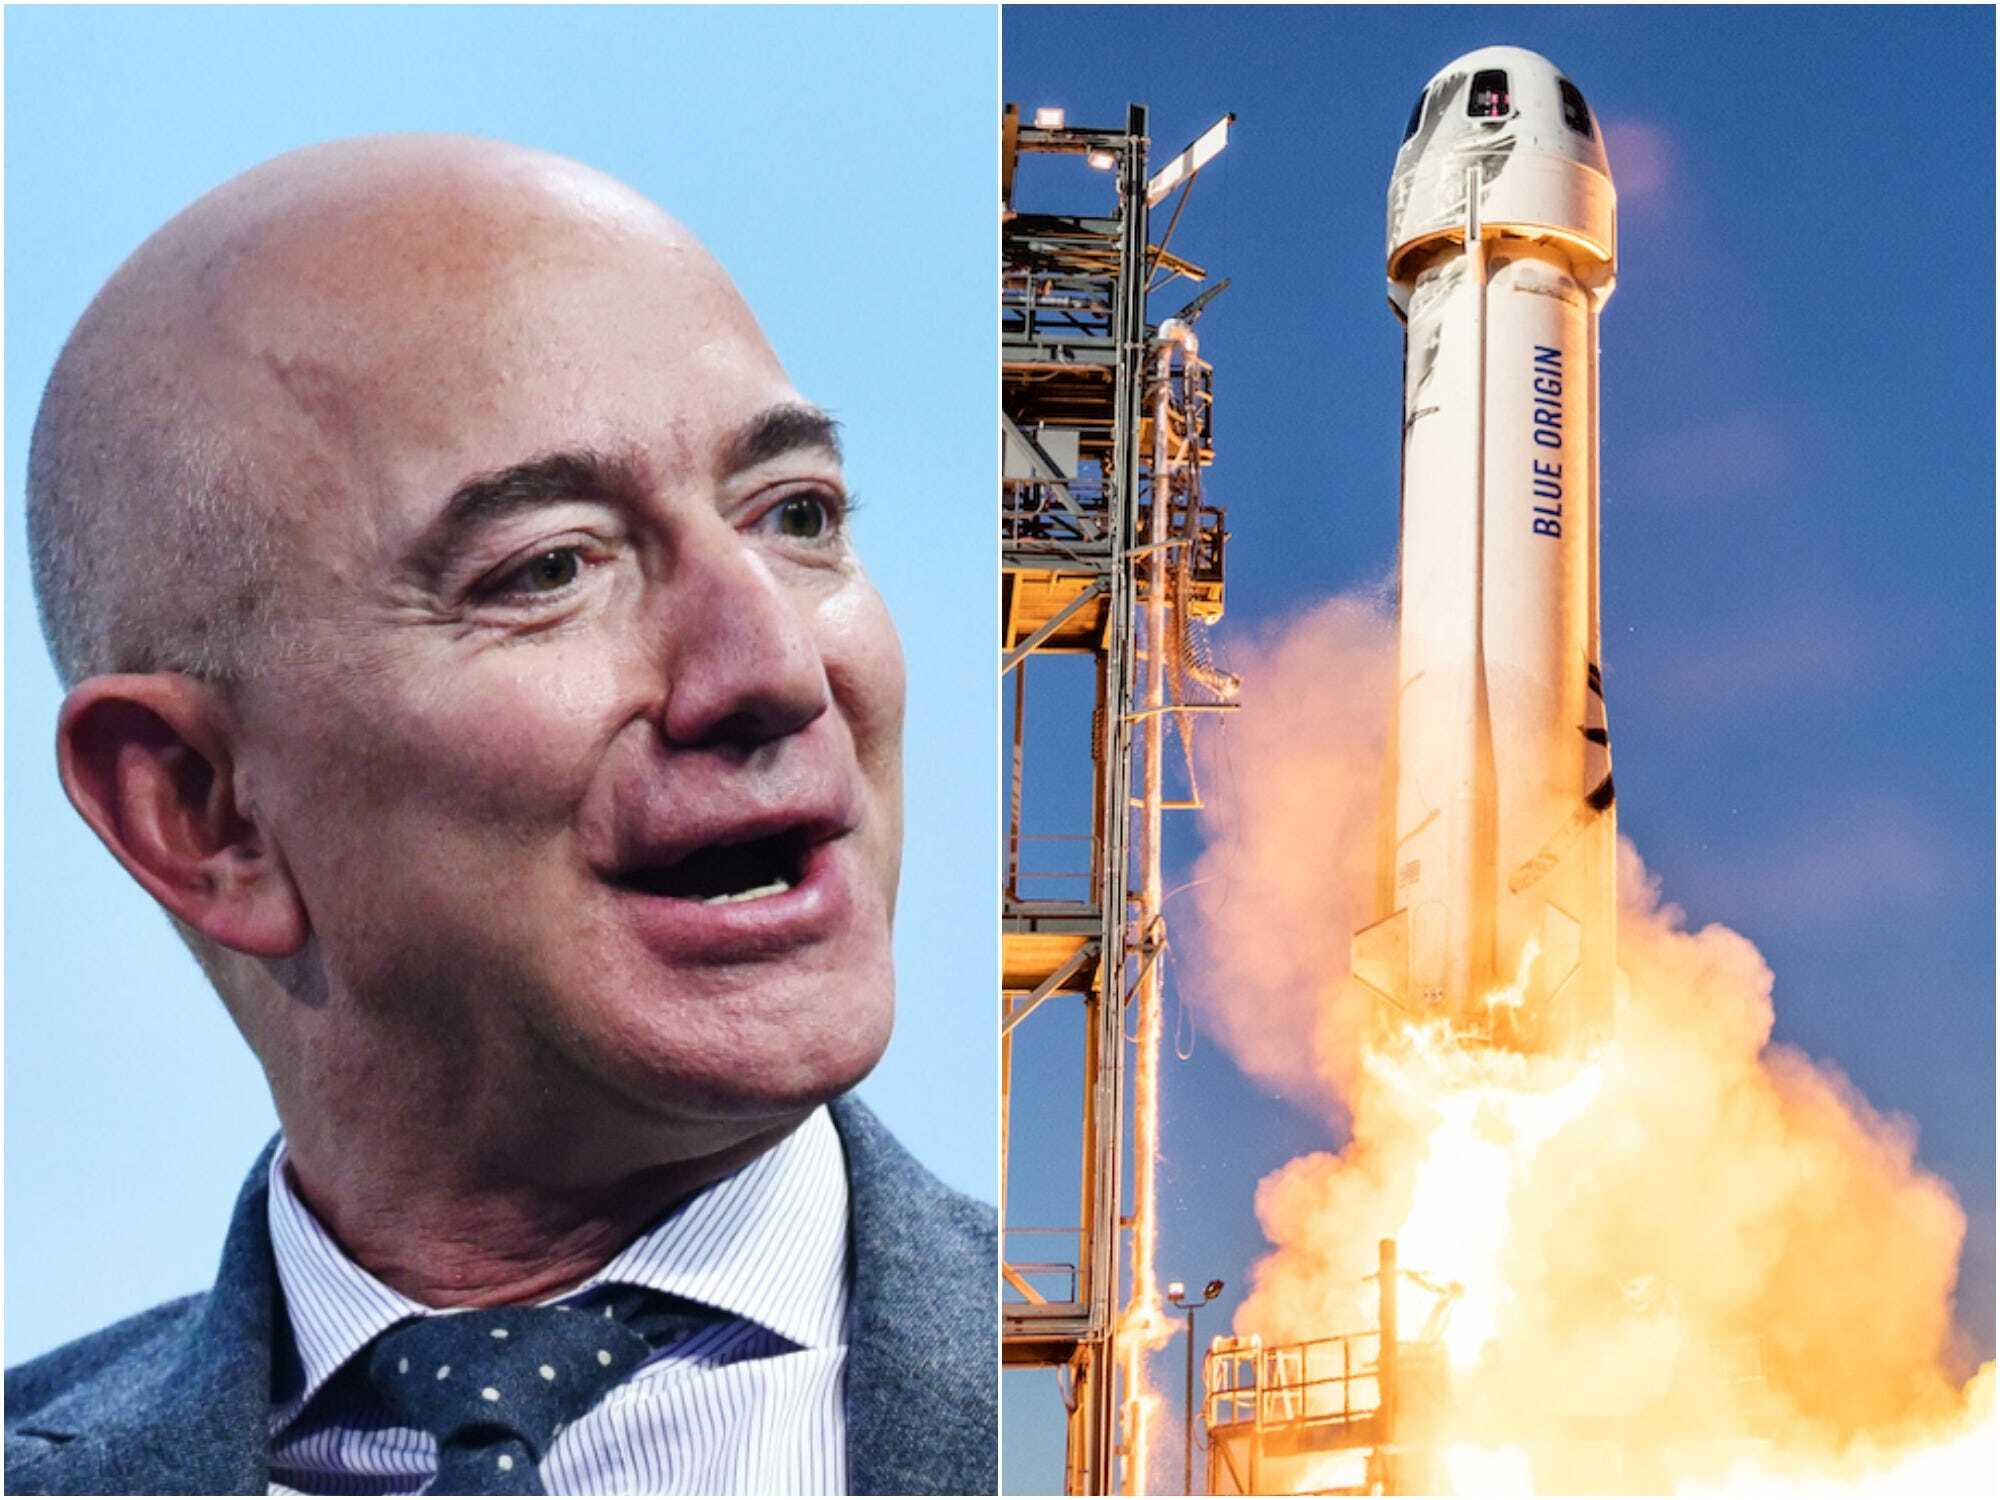 41,000 Sign Petitions To Stop Jeff Bezos From Returning to Earth